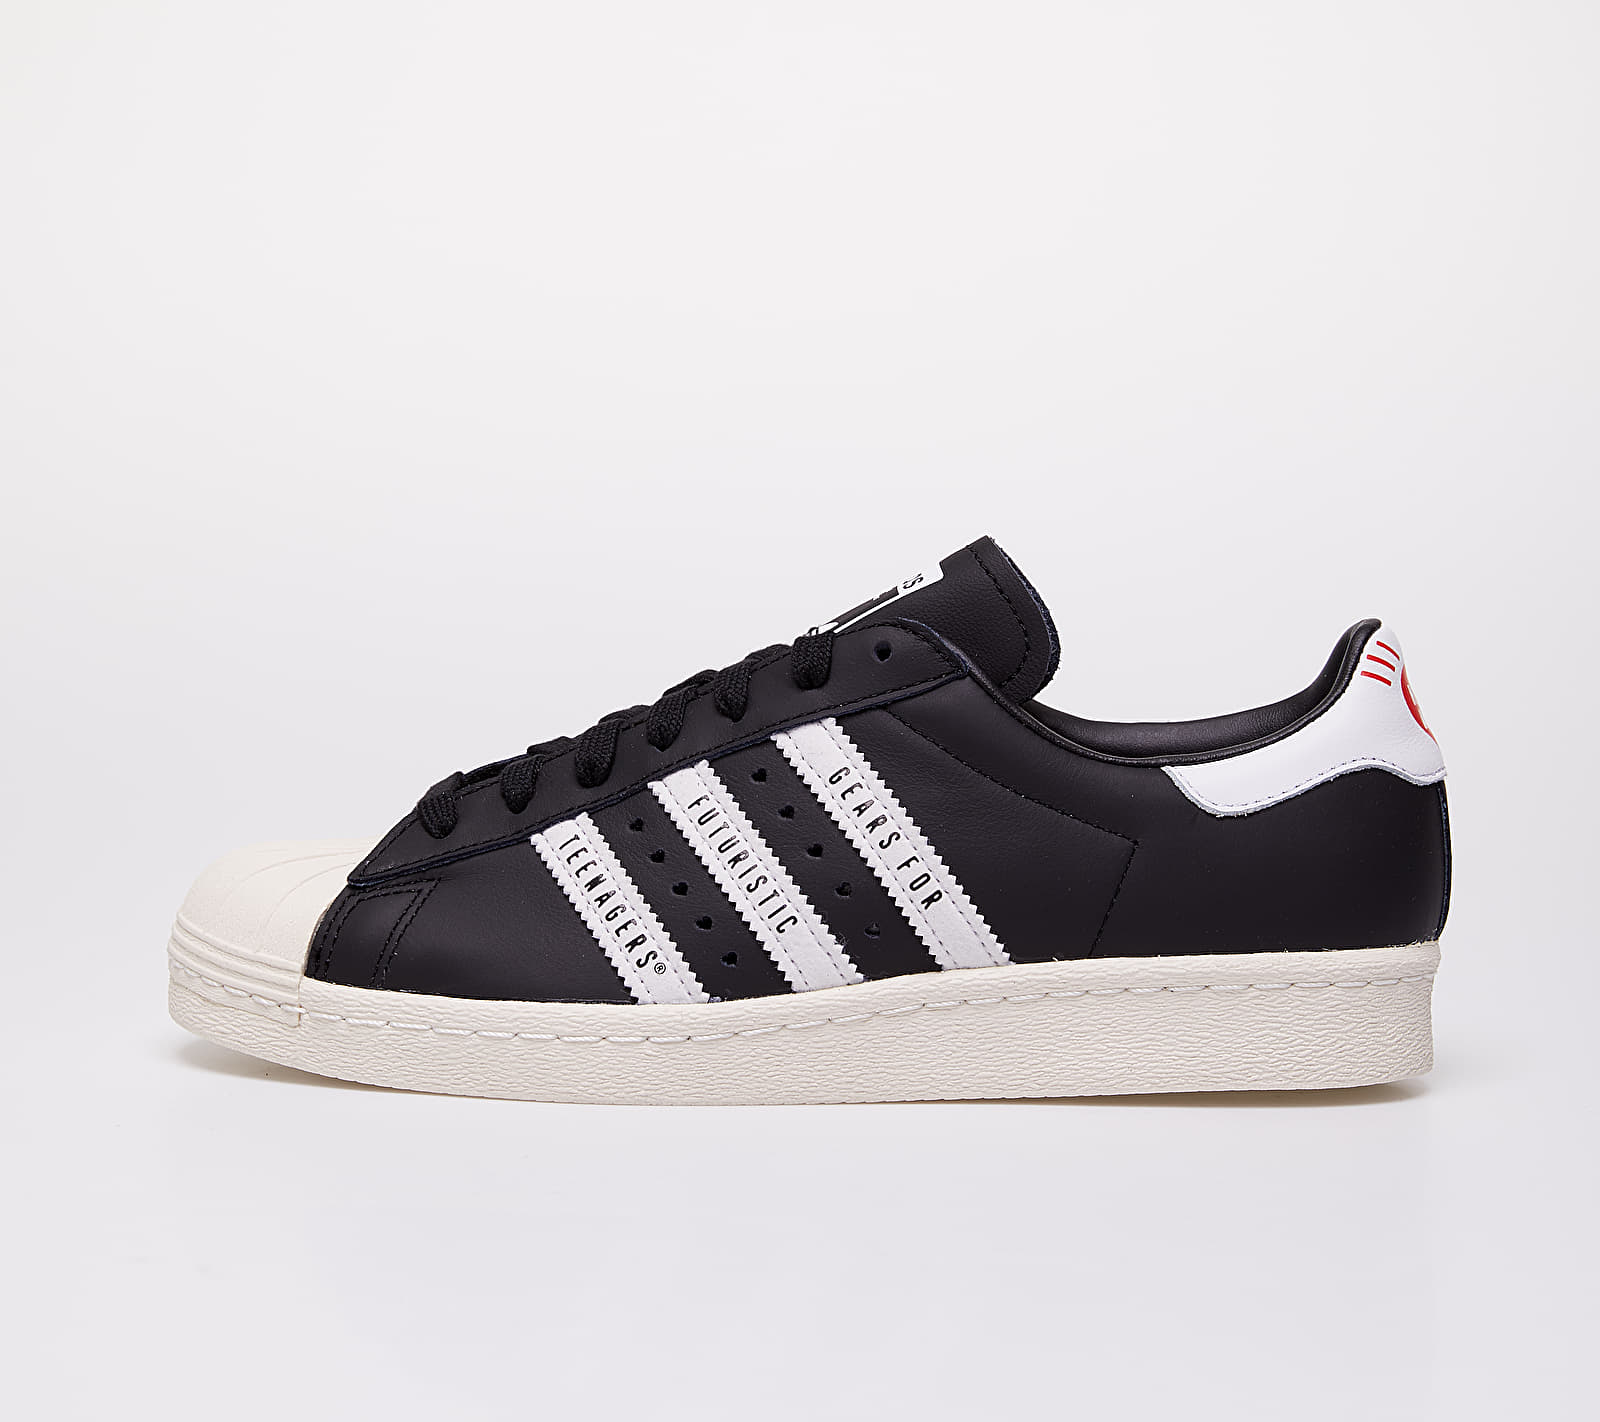 adidas x Pharrell Williams Superstar 80s Human Made Core Black/ Ftwr White/ Off White FY0729